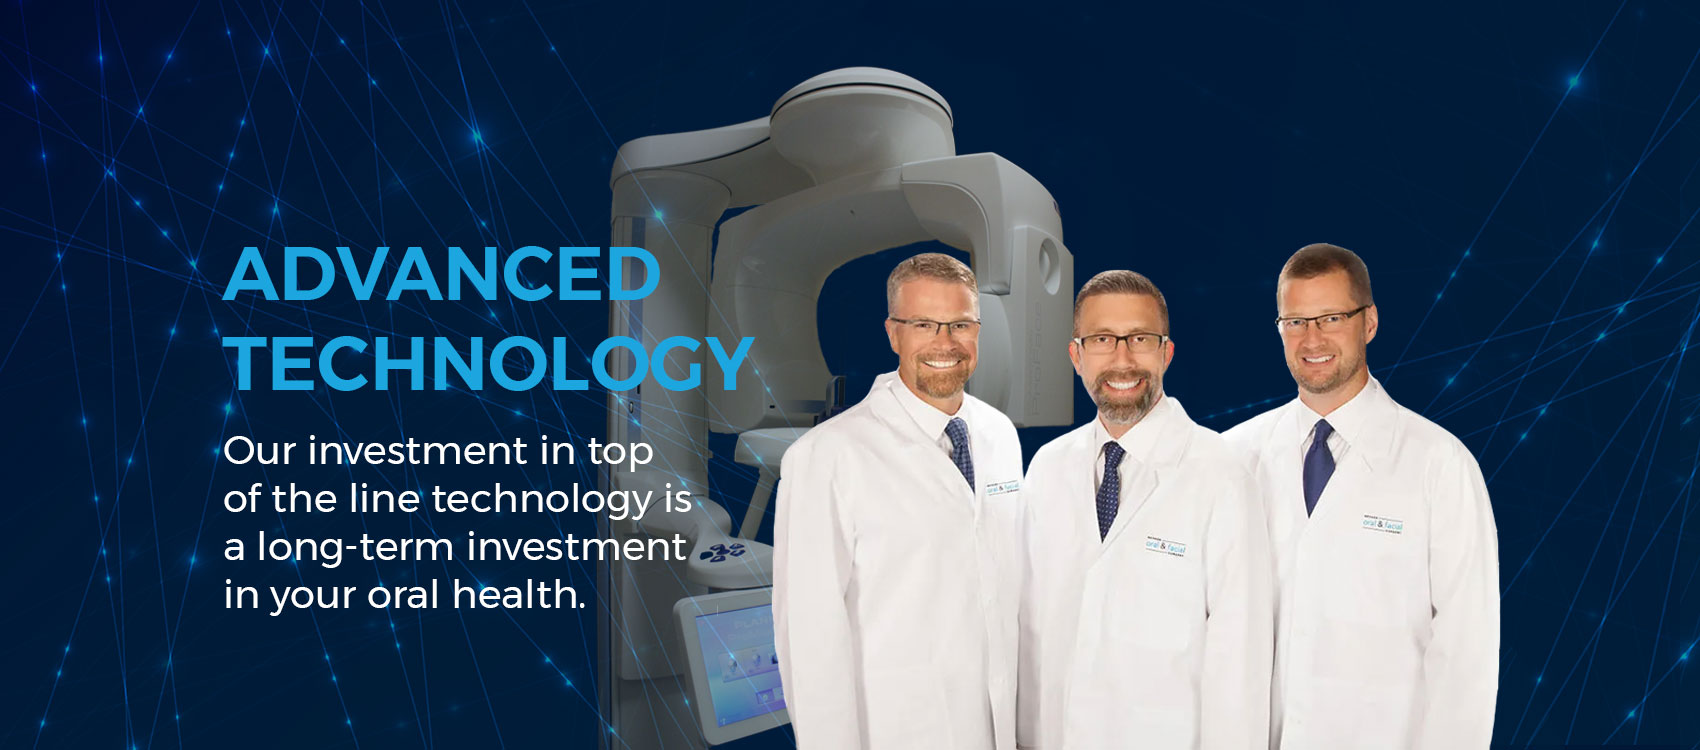 Advanced Technology at Nevada Facial and Oral Surgery